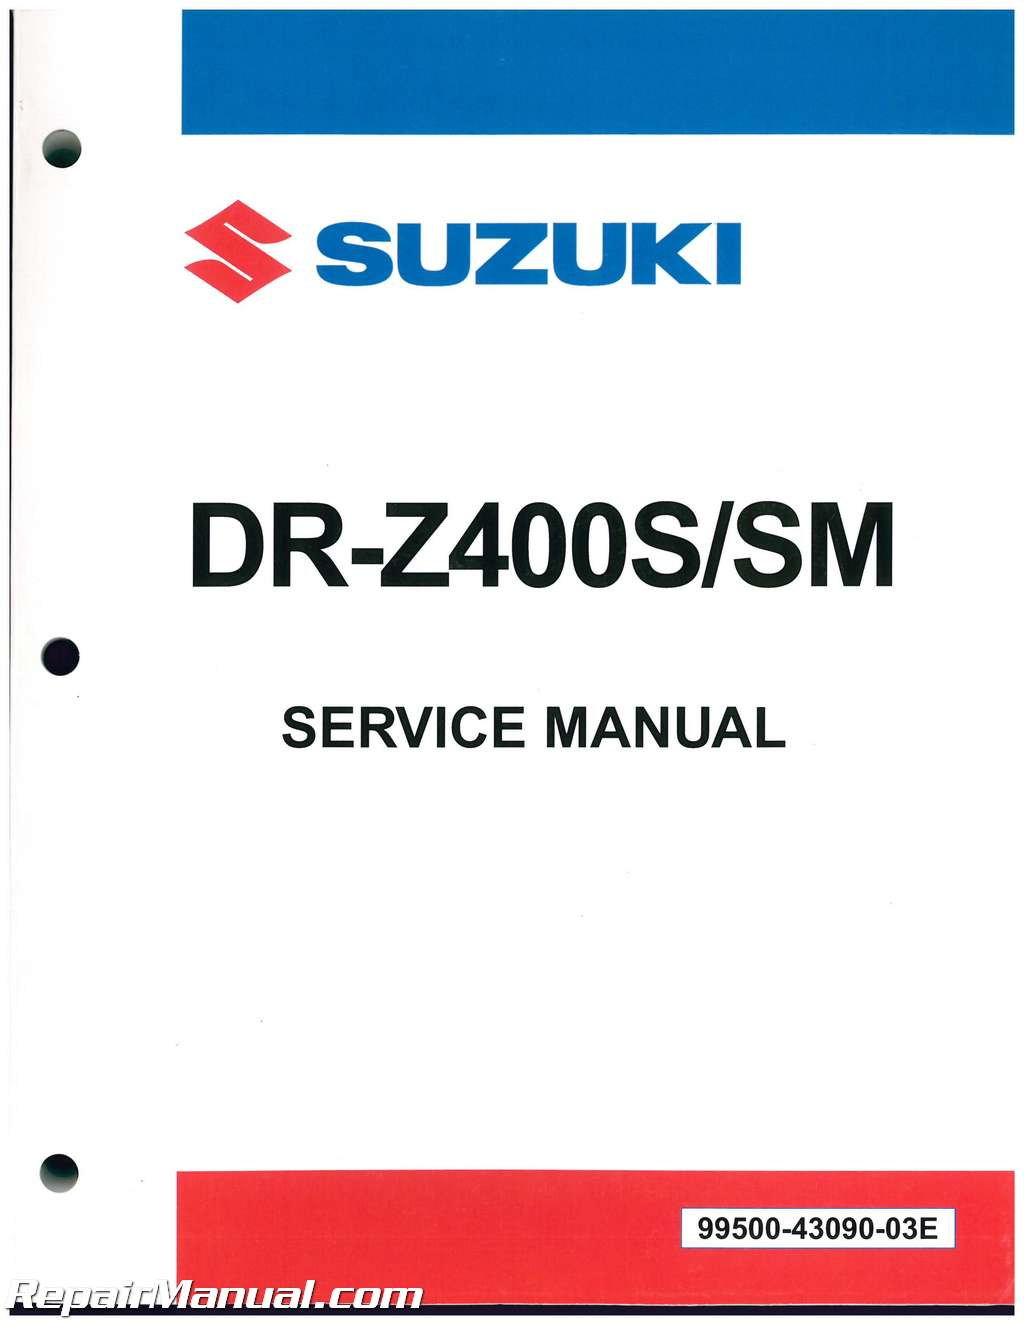 2005 2011 suzuki dr z400sm supermoto 2000 2011 dr z400s paper rh repairmanual com suzuki drz 400 owners manual suzuki drz 400 owners manual pdf